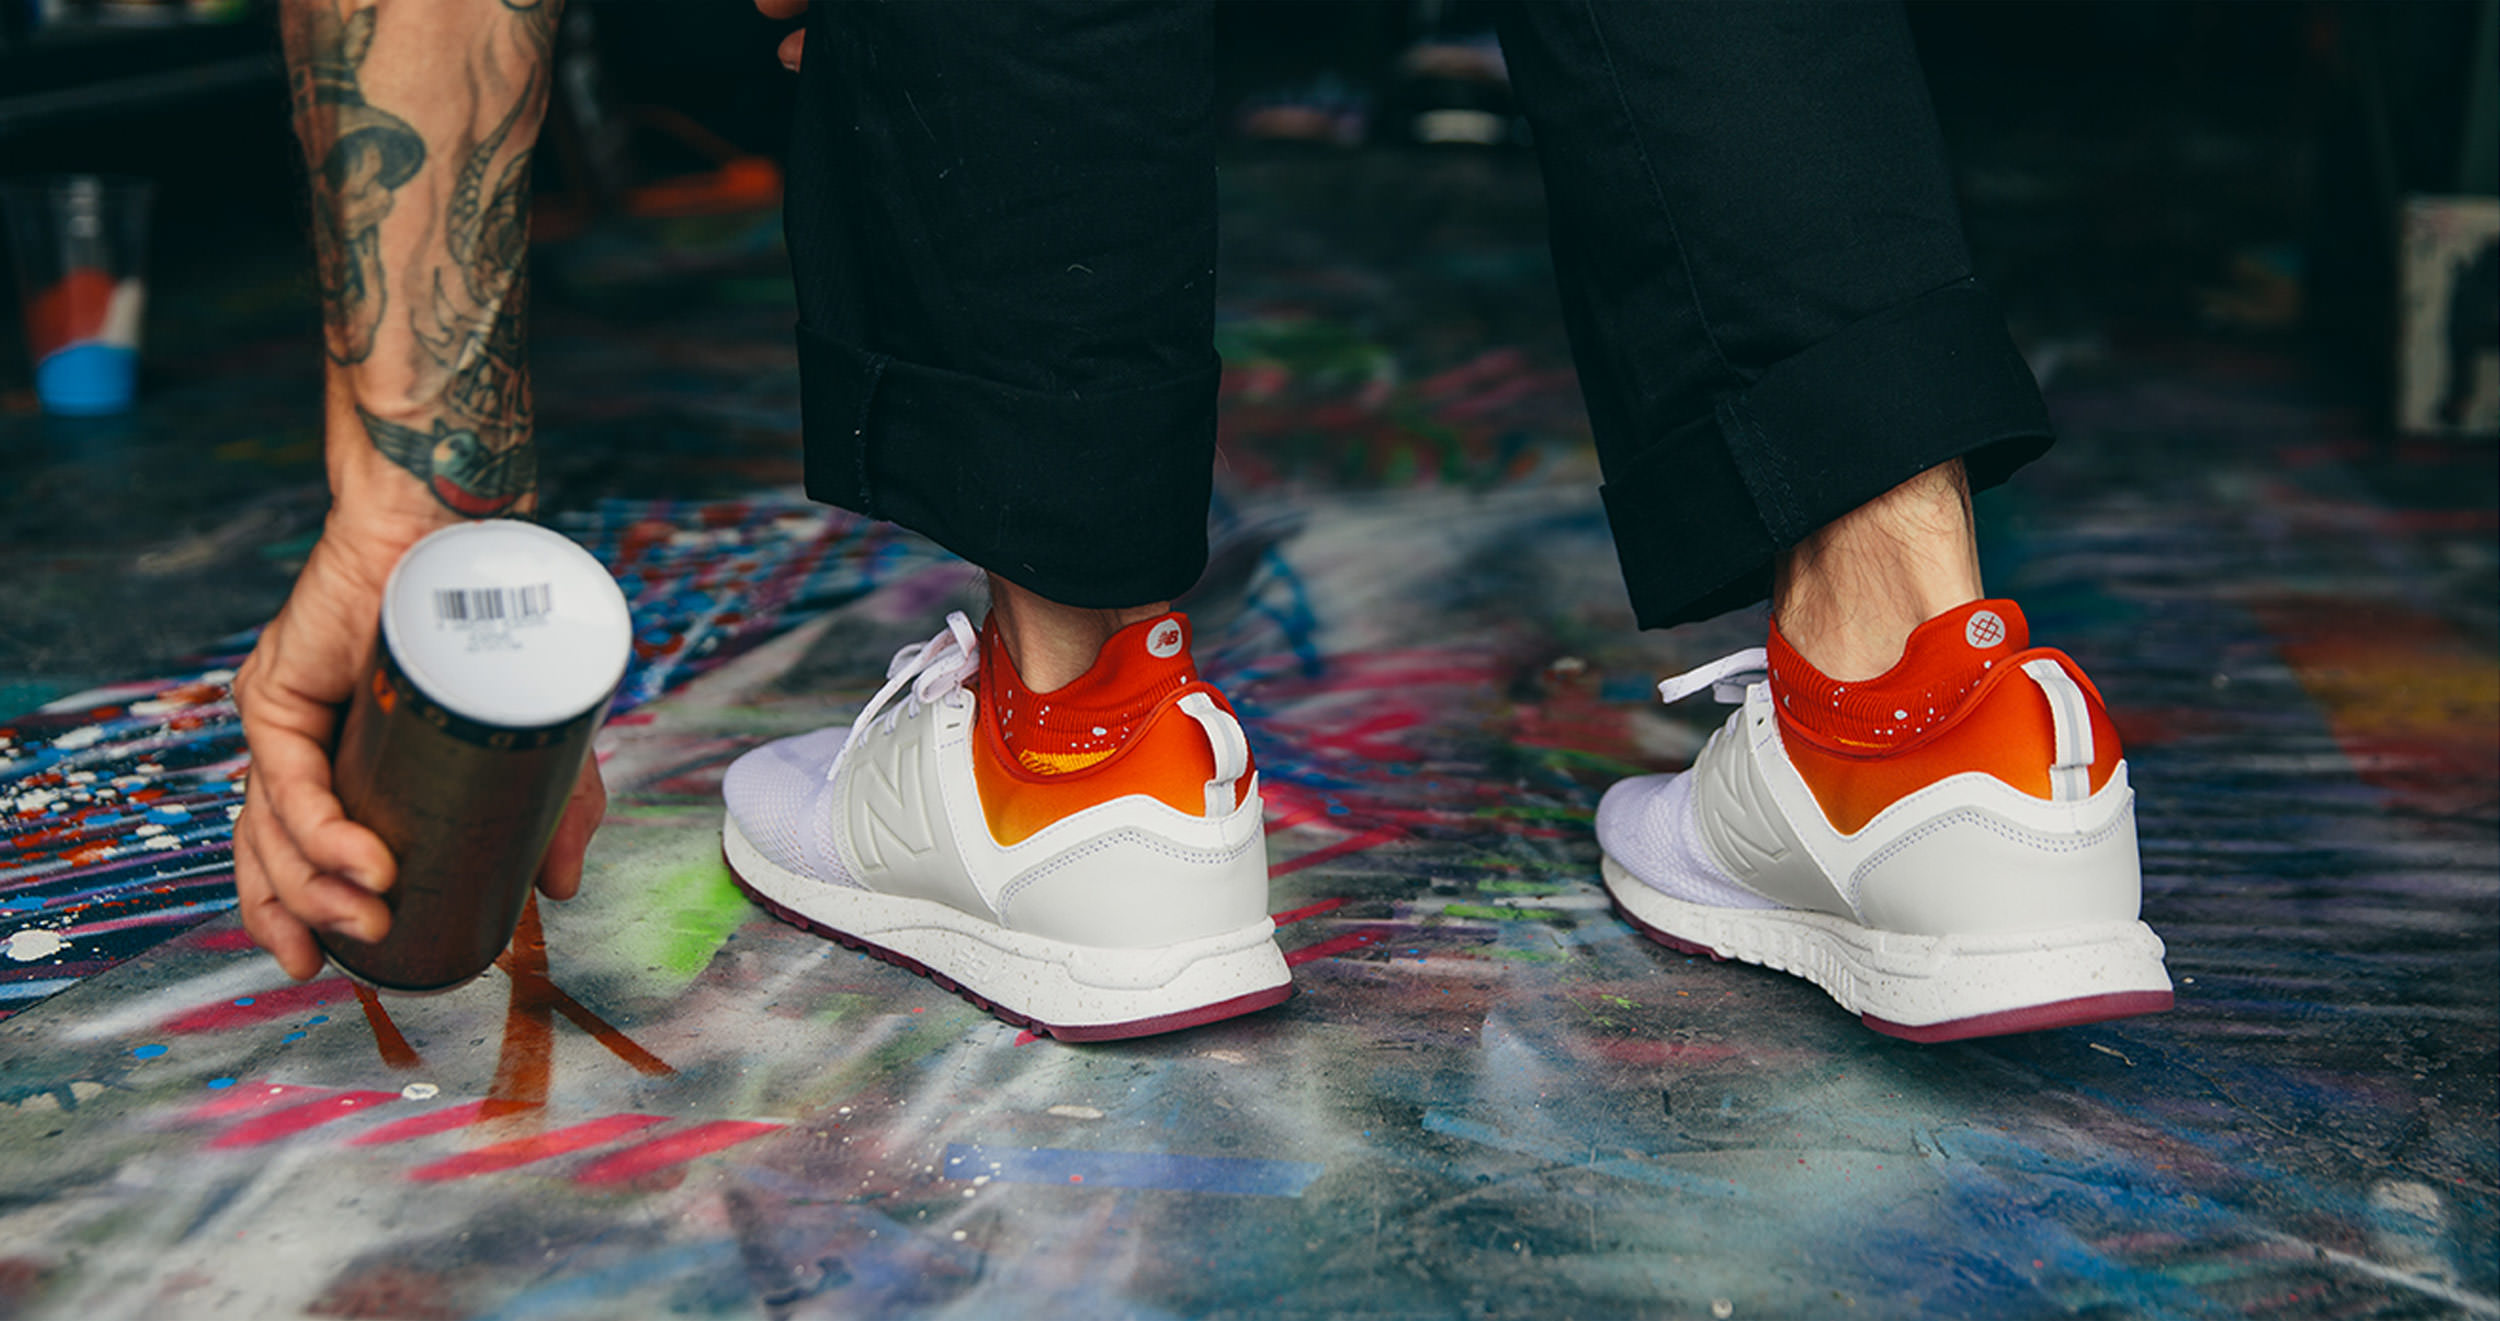 New Balance x Stance 247 Men's Shoes | All Day